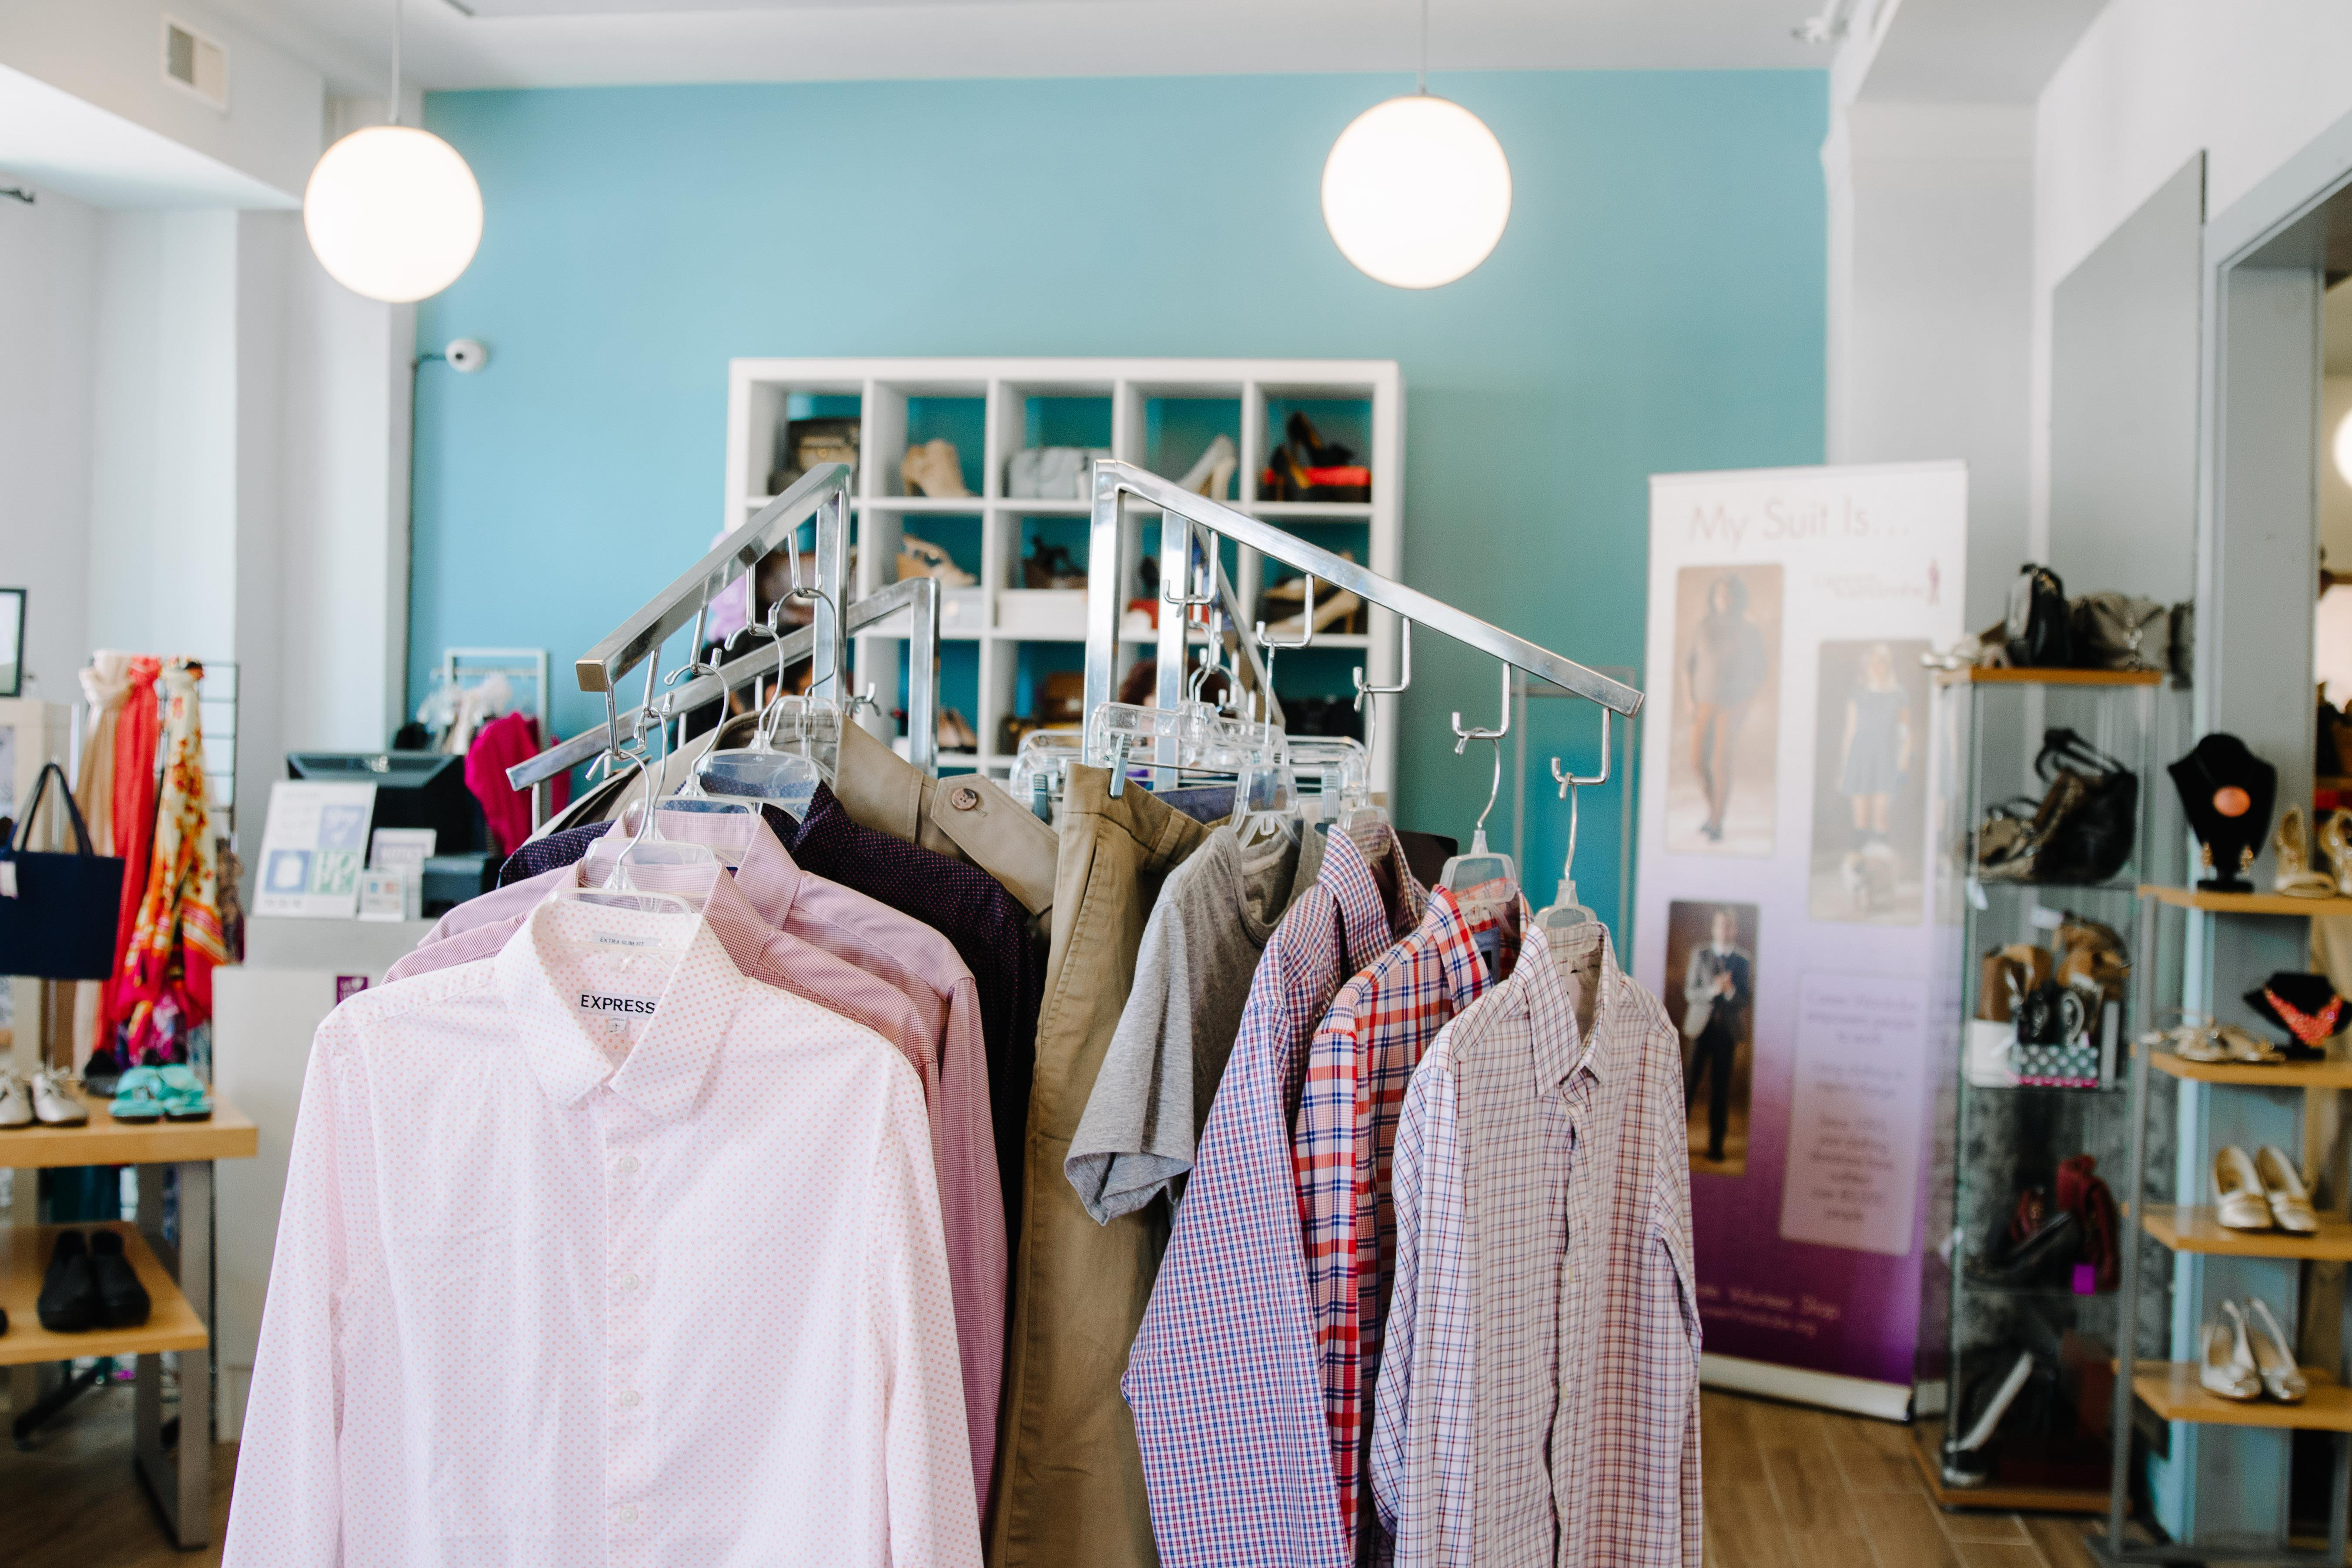 The Wardrobe, a resale store - The Wardrobe resale/boutique space